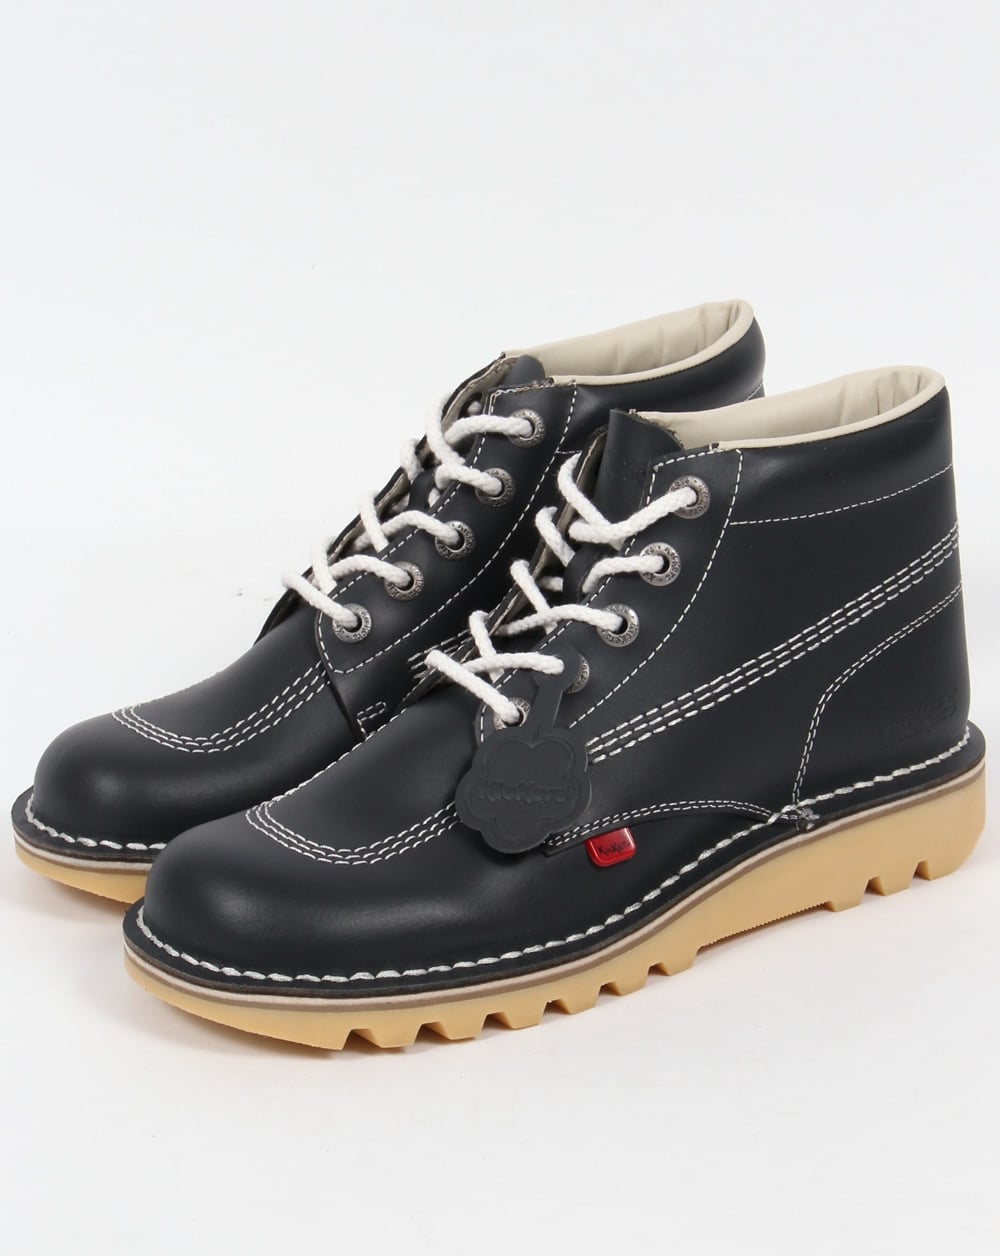 Kickers Kick Hi Boots In Leather Navy - Kickers from 80s ...